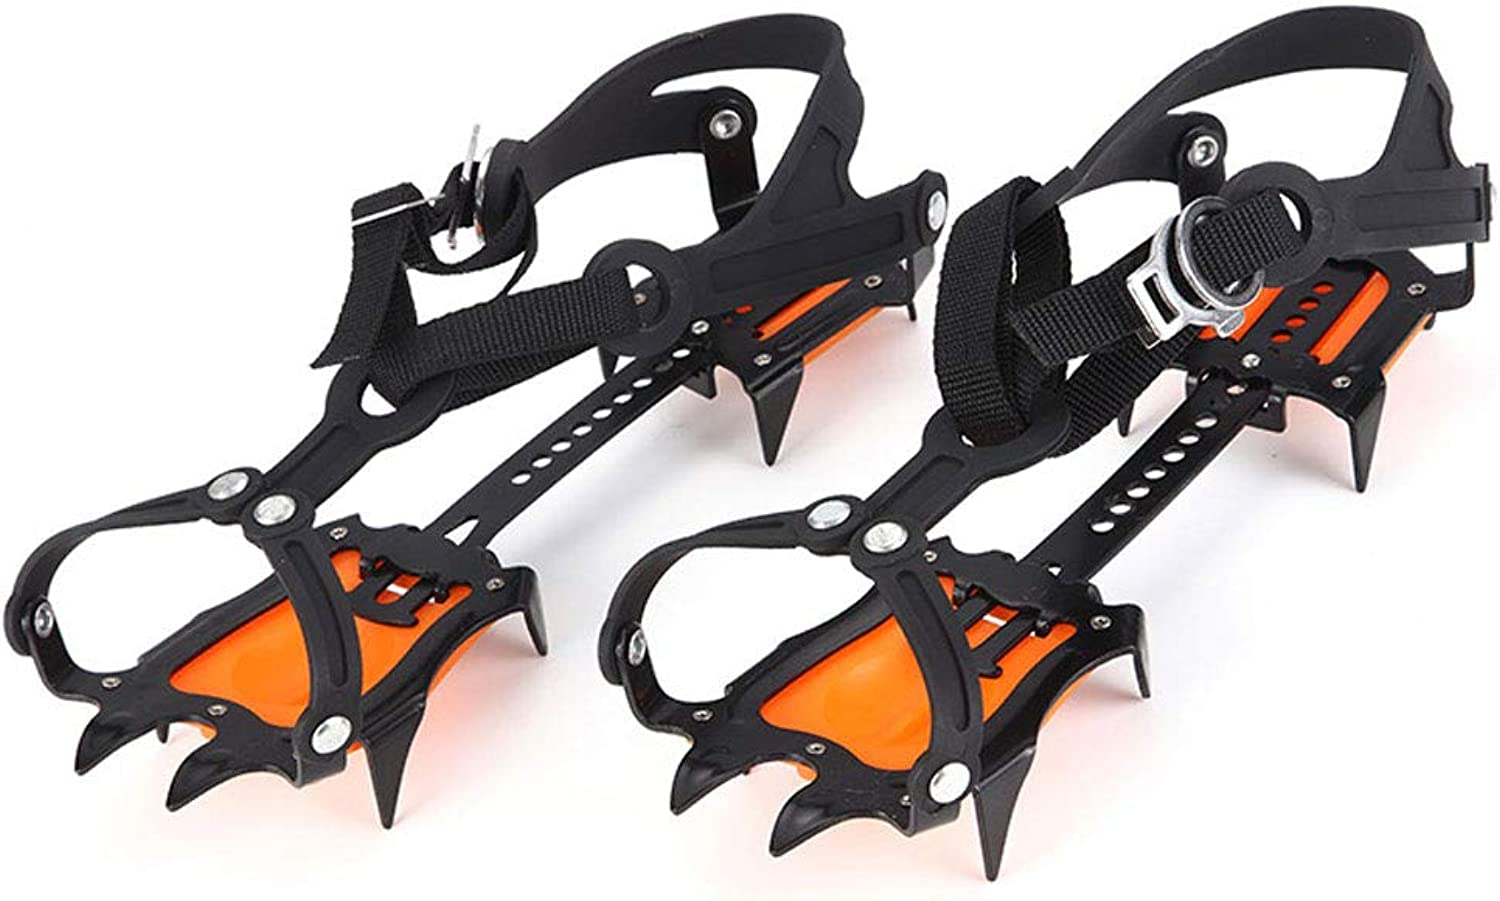 Crampons Outdoor Professional Ice Climbing AntiSkid shoes Covers Climbing Snow Claws AntiSkid Ice Caught 10 Teeth Manganese Steel Crampons